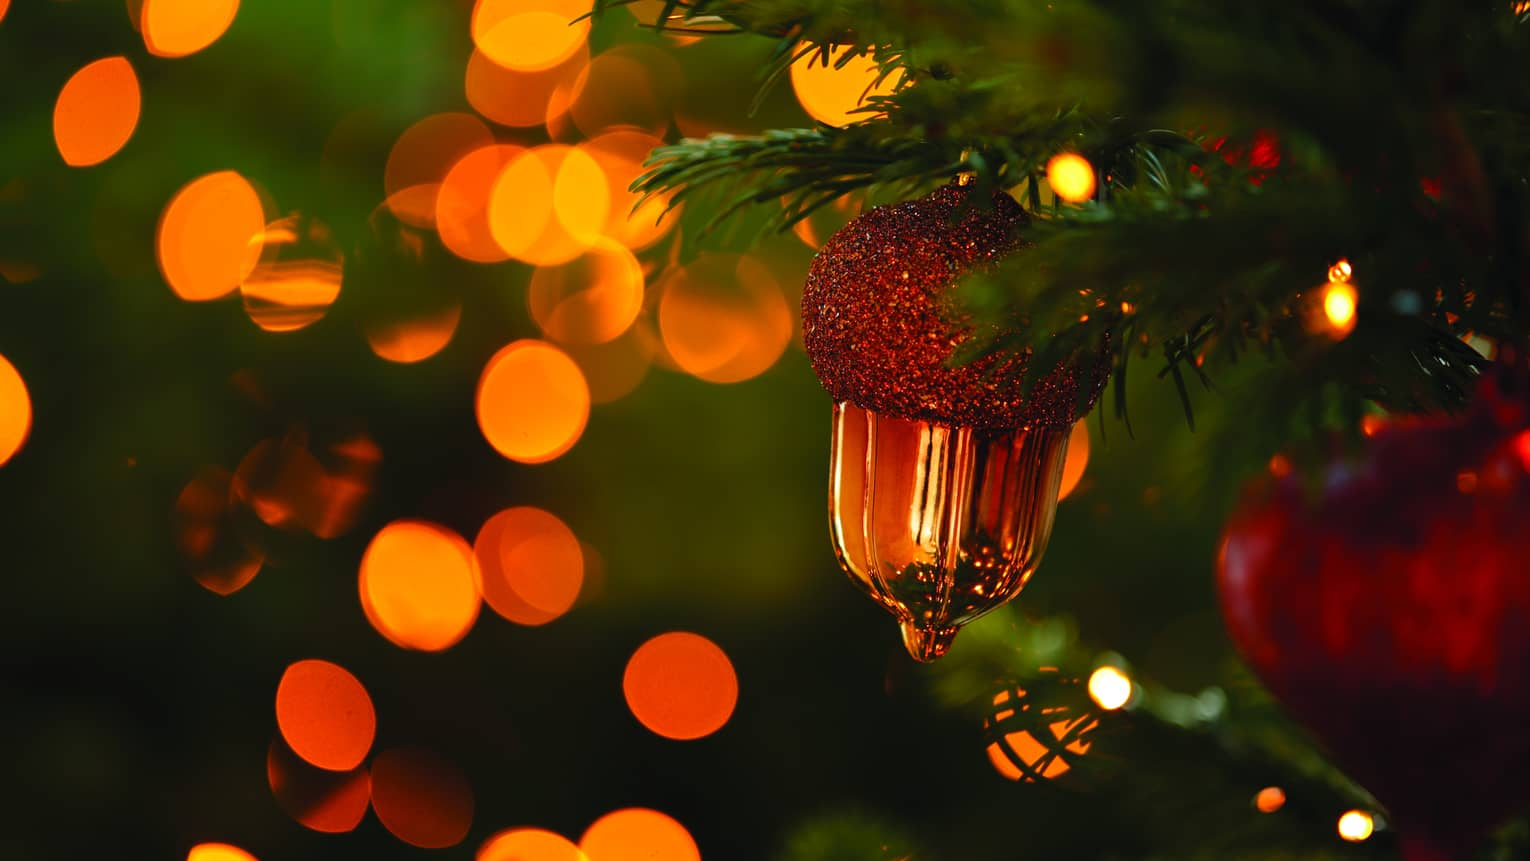 Gold-sparkling acorn and globe ornaments on a Christmas tree branch